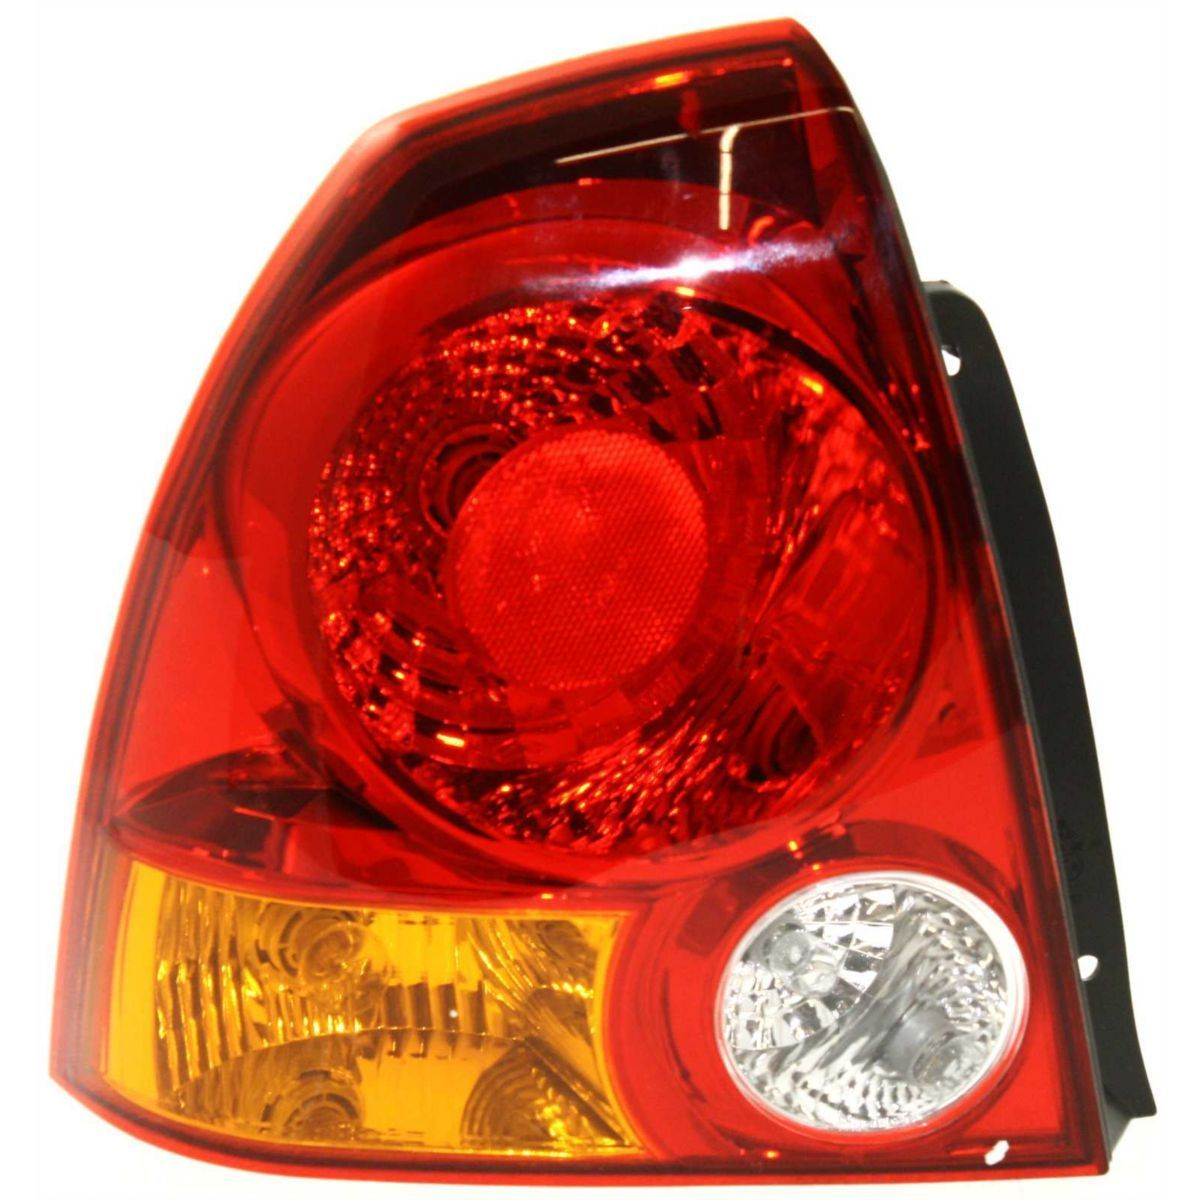 <b> New Tail Light Assembly Driver Side Fits 2003-05 Hyundai Accent Sedan HY2800122 9240125520 <b>